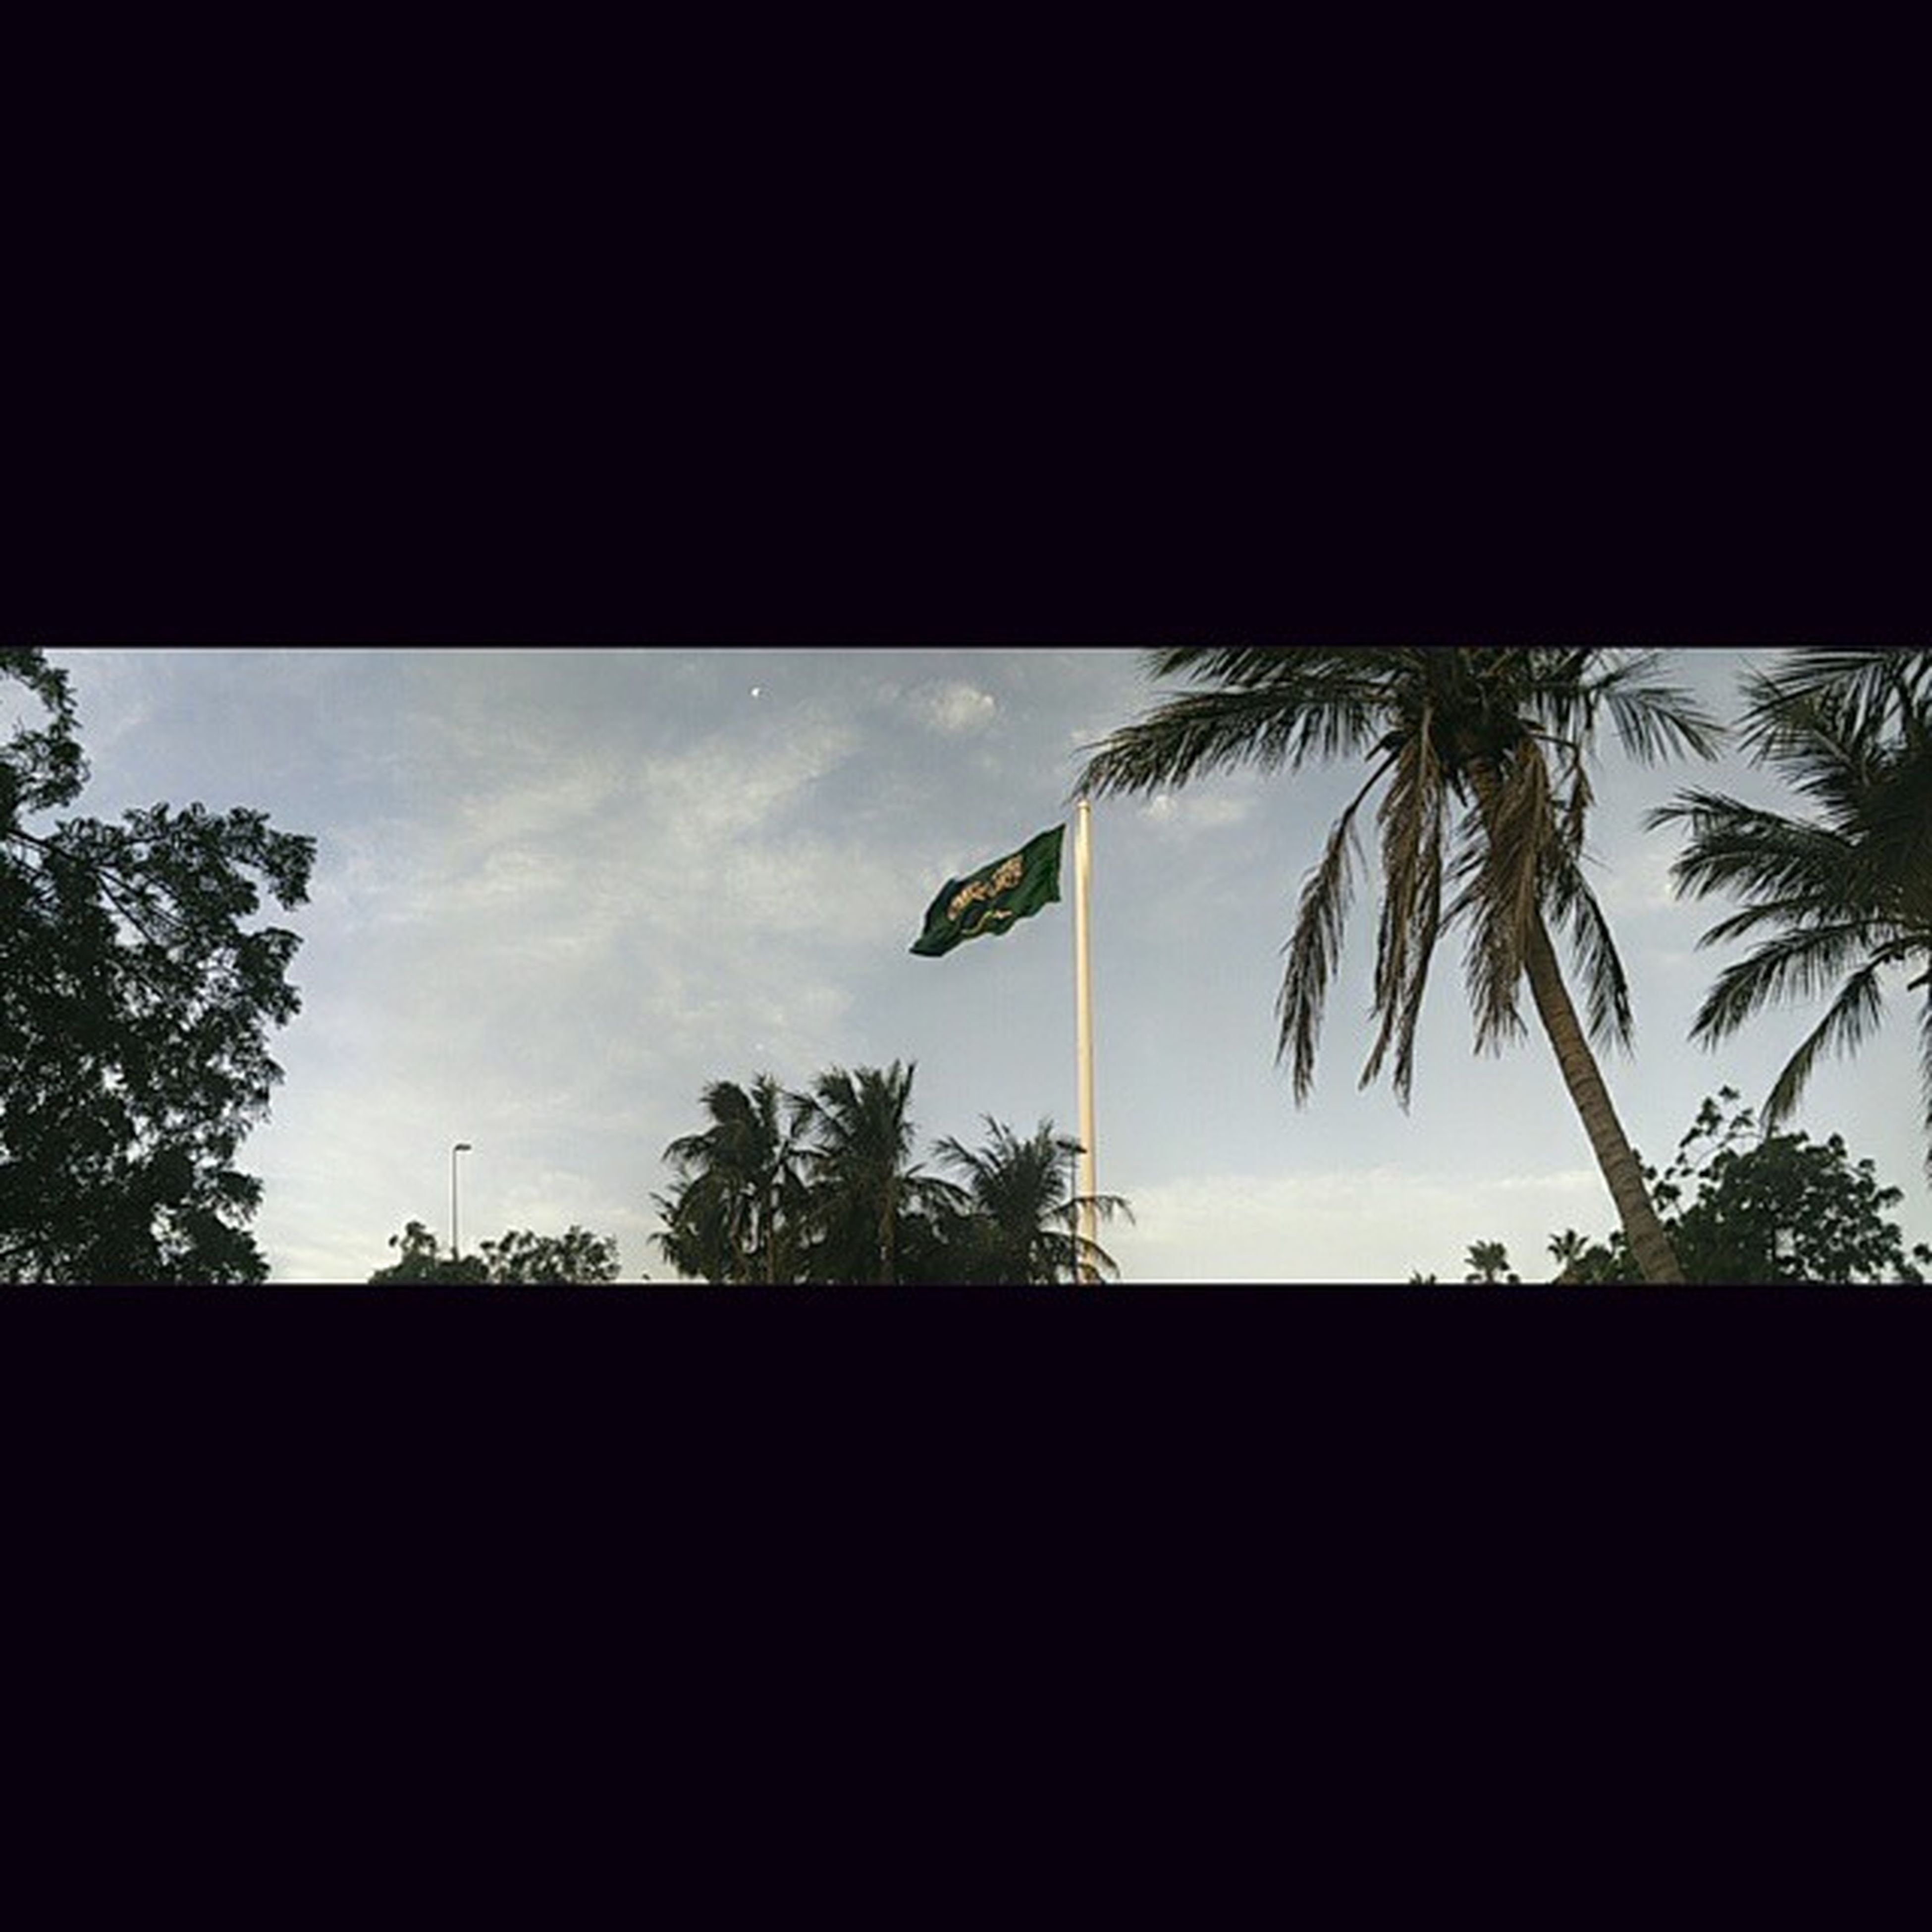 silhouette, tree, low angle view, sky, palm tree, tranquility, nature, outline, beauty in nature, copy space, scenics, tranquil scene, growth, cloud - sky, cloud, dark, outdoors, no people, sunset, dusk